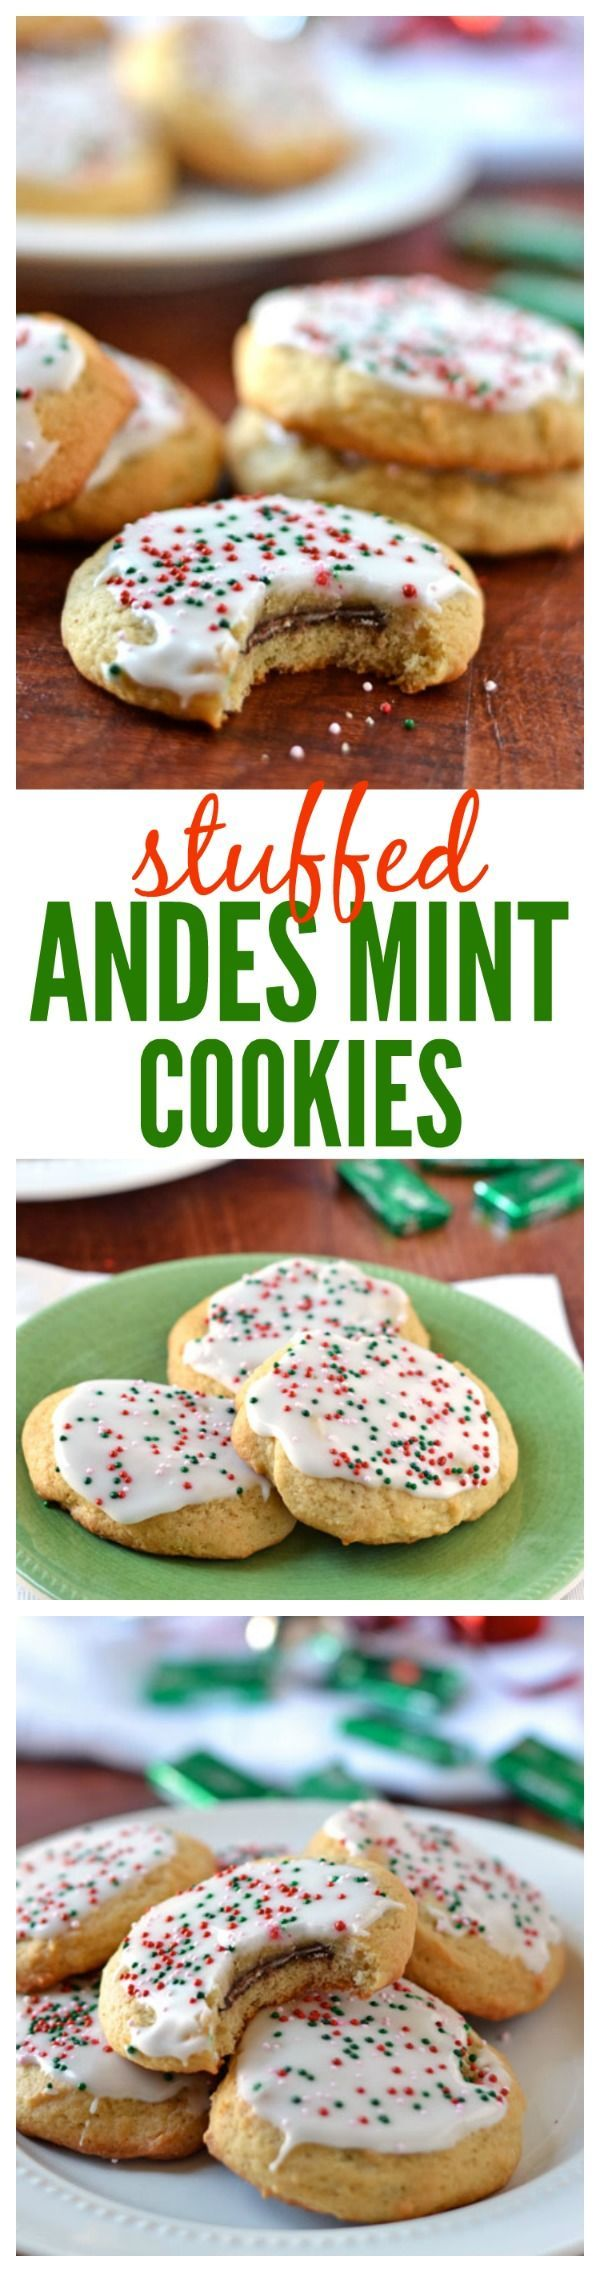 Cookies with andes mints recipe